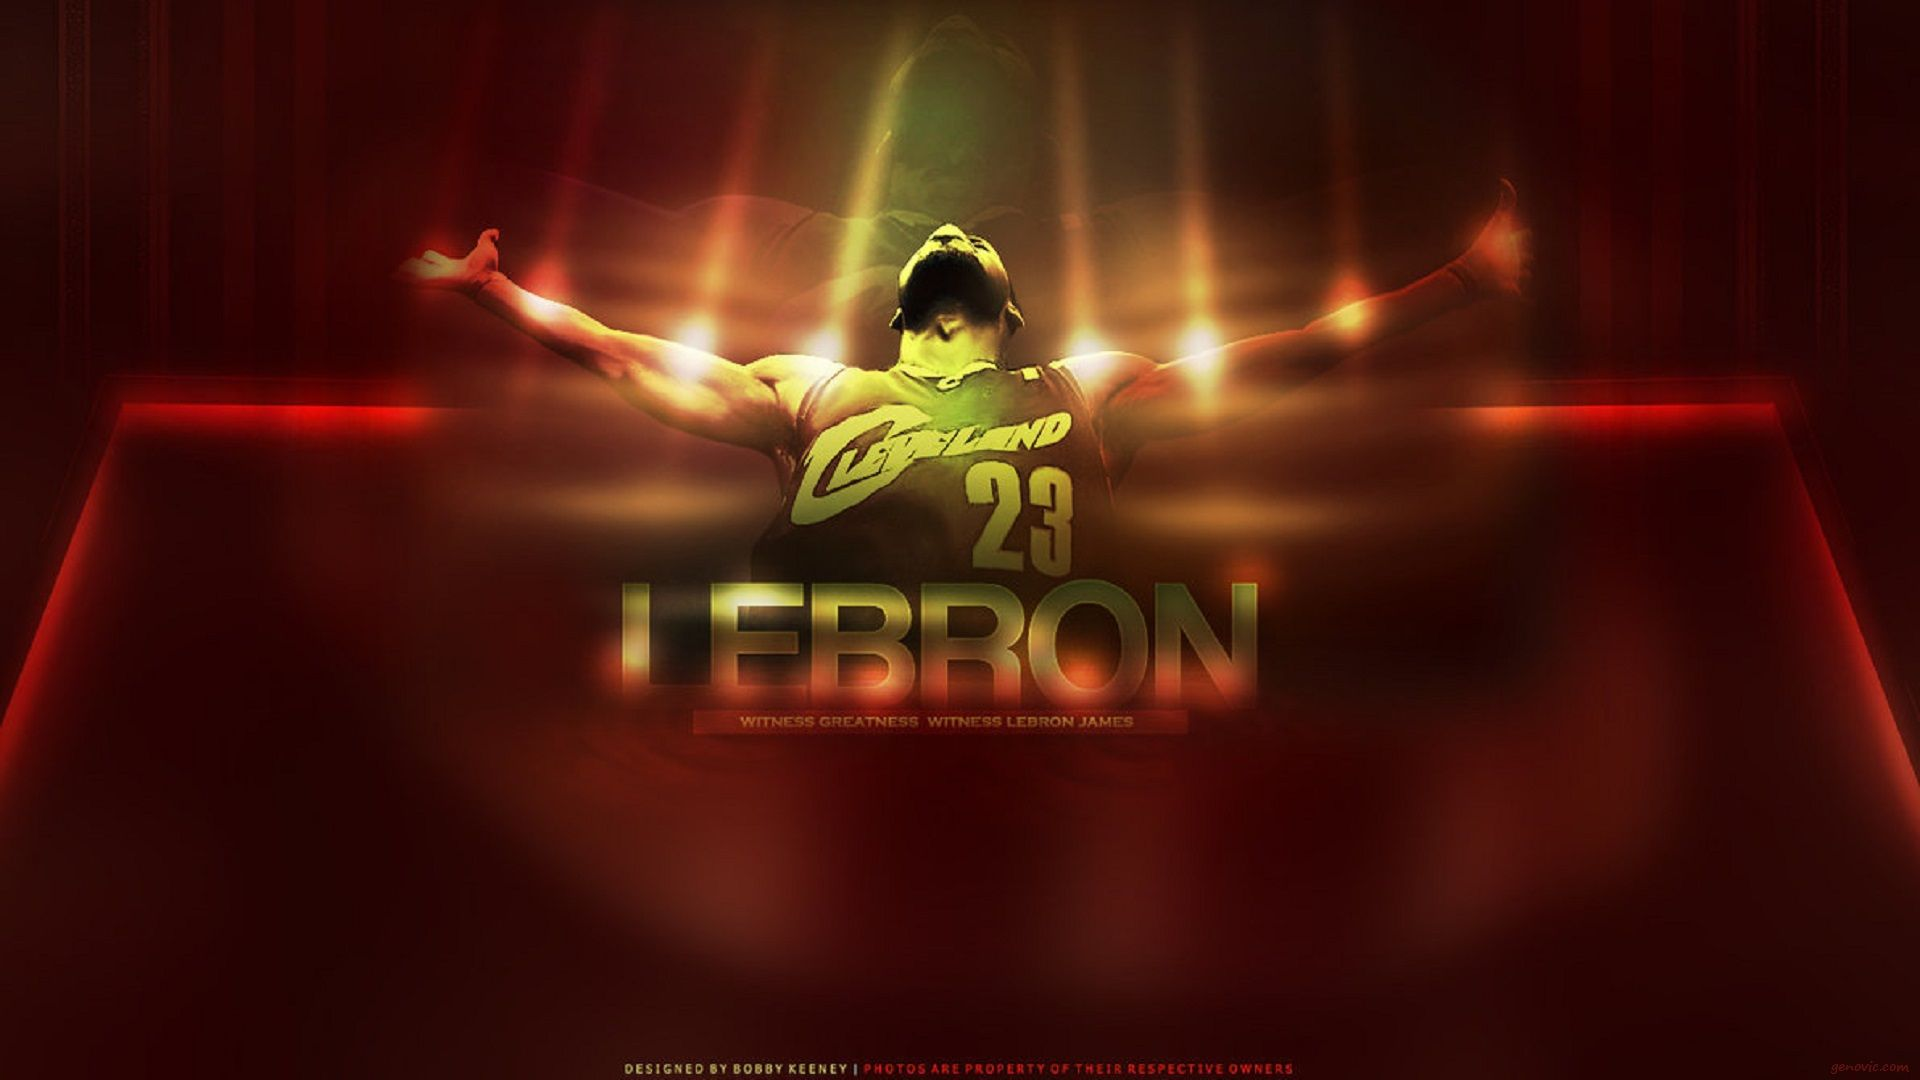 Free Download Lebron James Iphone Wallpaper Hd 1920x1080 For